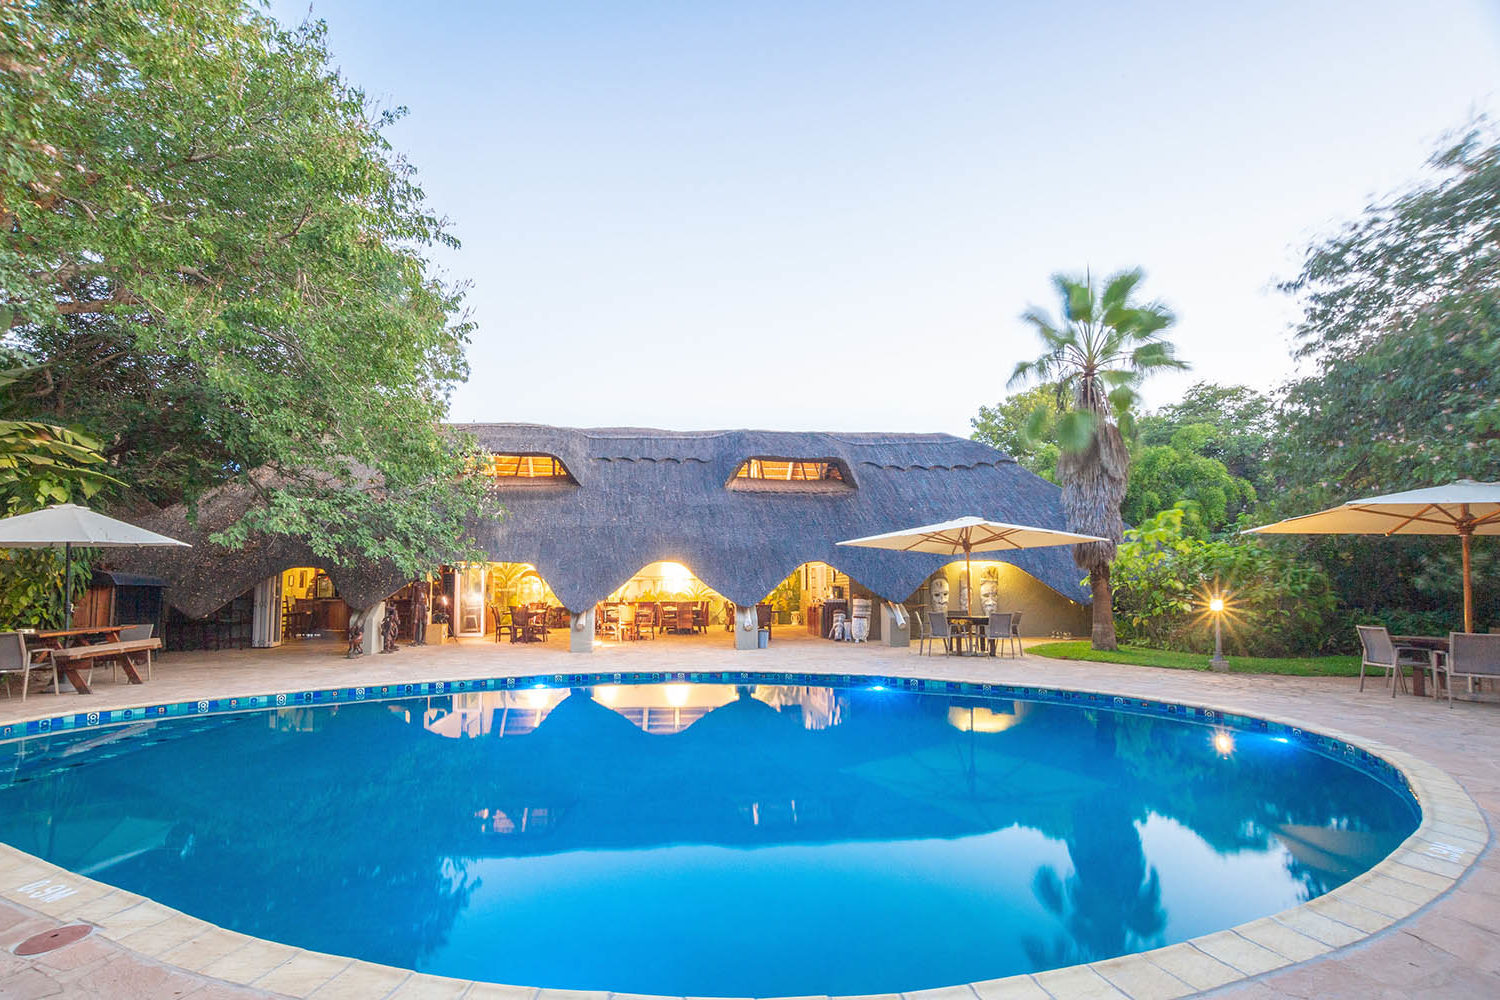 bayete guest lodge victoria-falls-accommodation-zimbabwe-zambia-in-style-central-area-pool-views